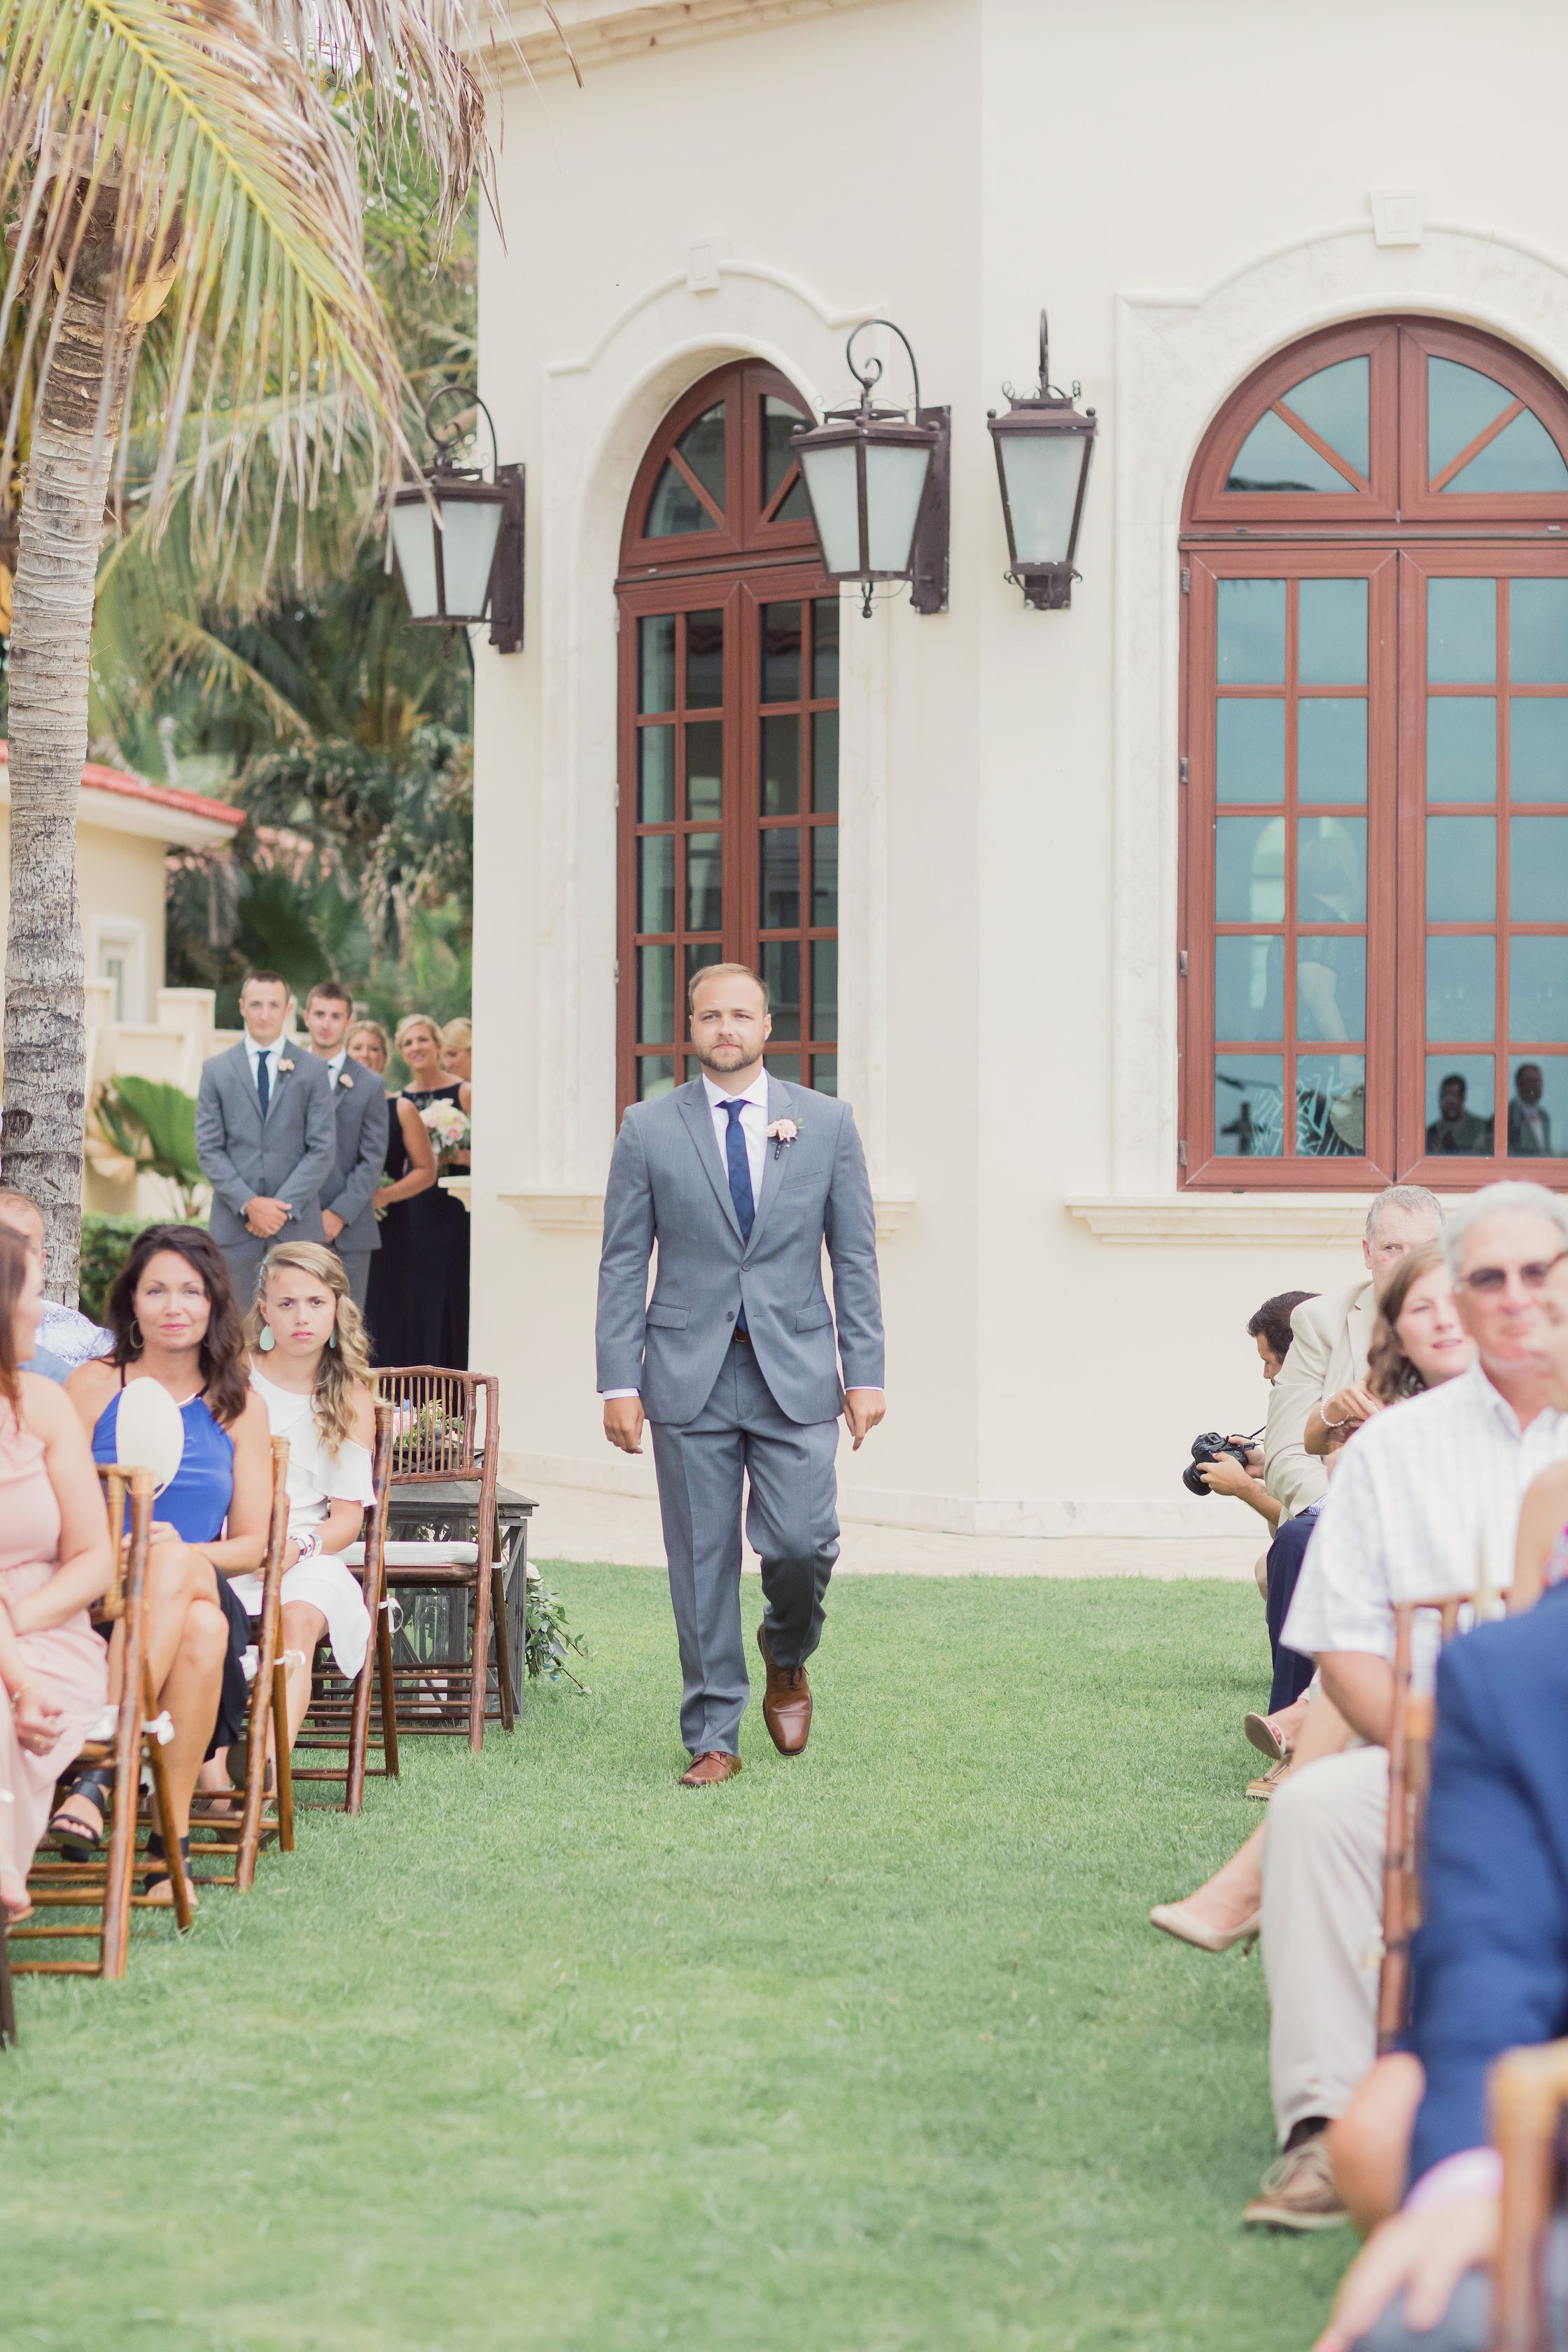 cancun-wedding-venue-villa-la-joya-917 copy-websize.jpg